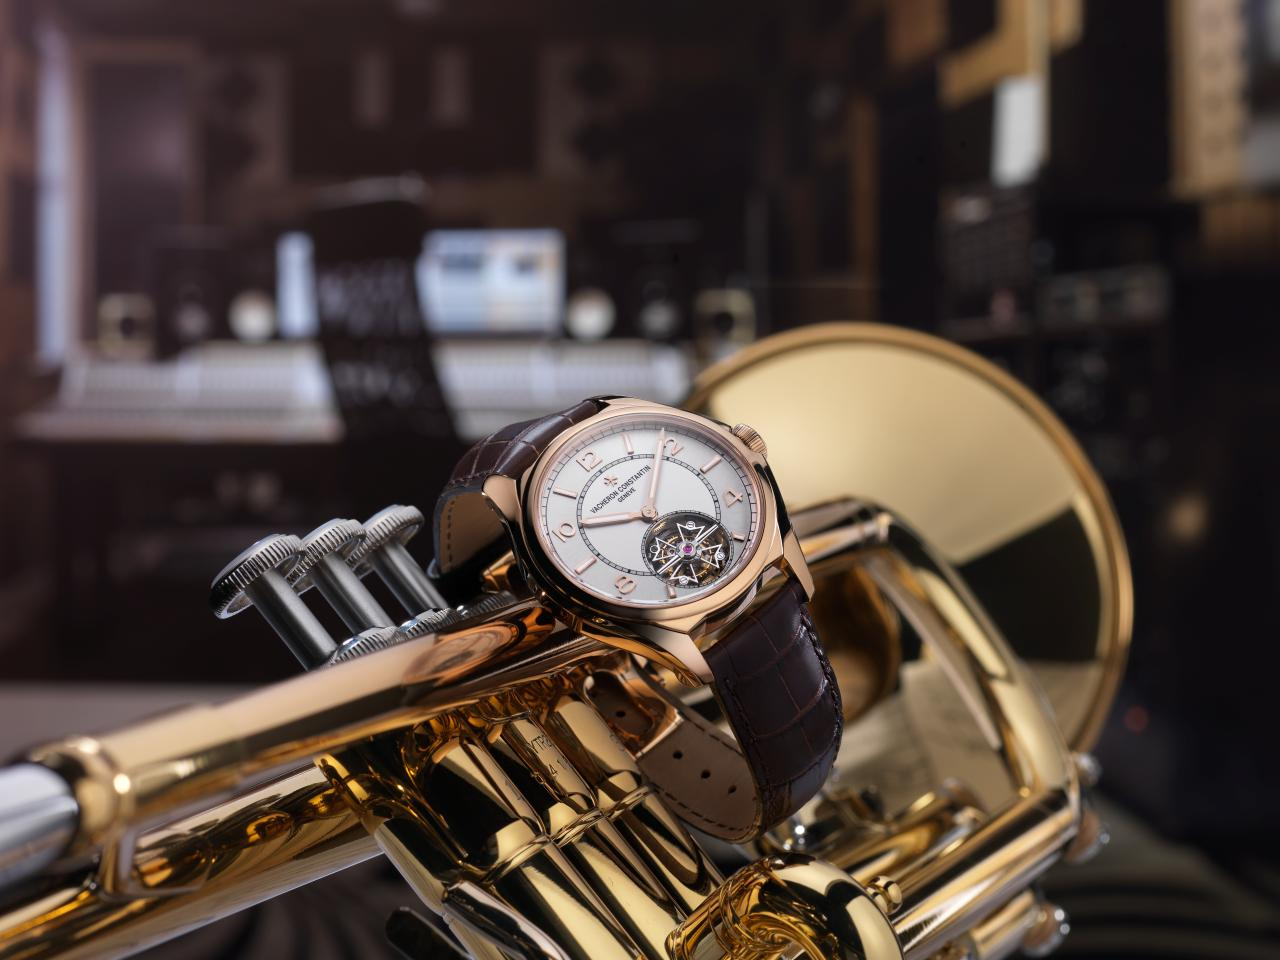 Vacheron Constantin FiftySix Tourbillon in de Abbey Roads Studios